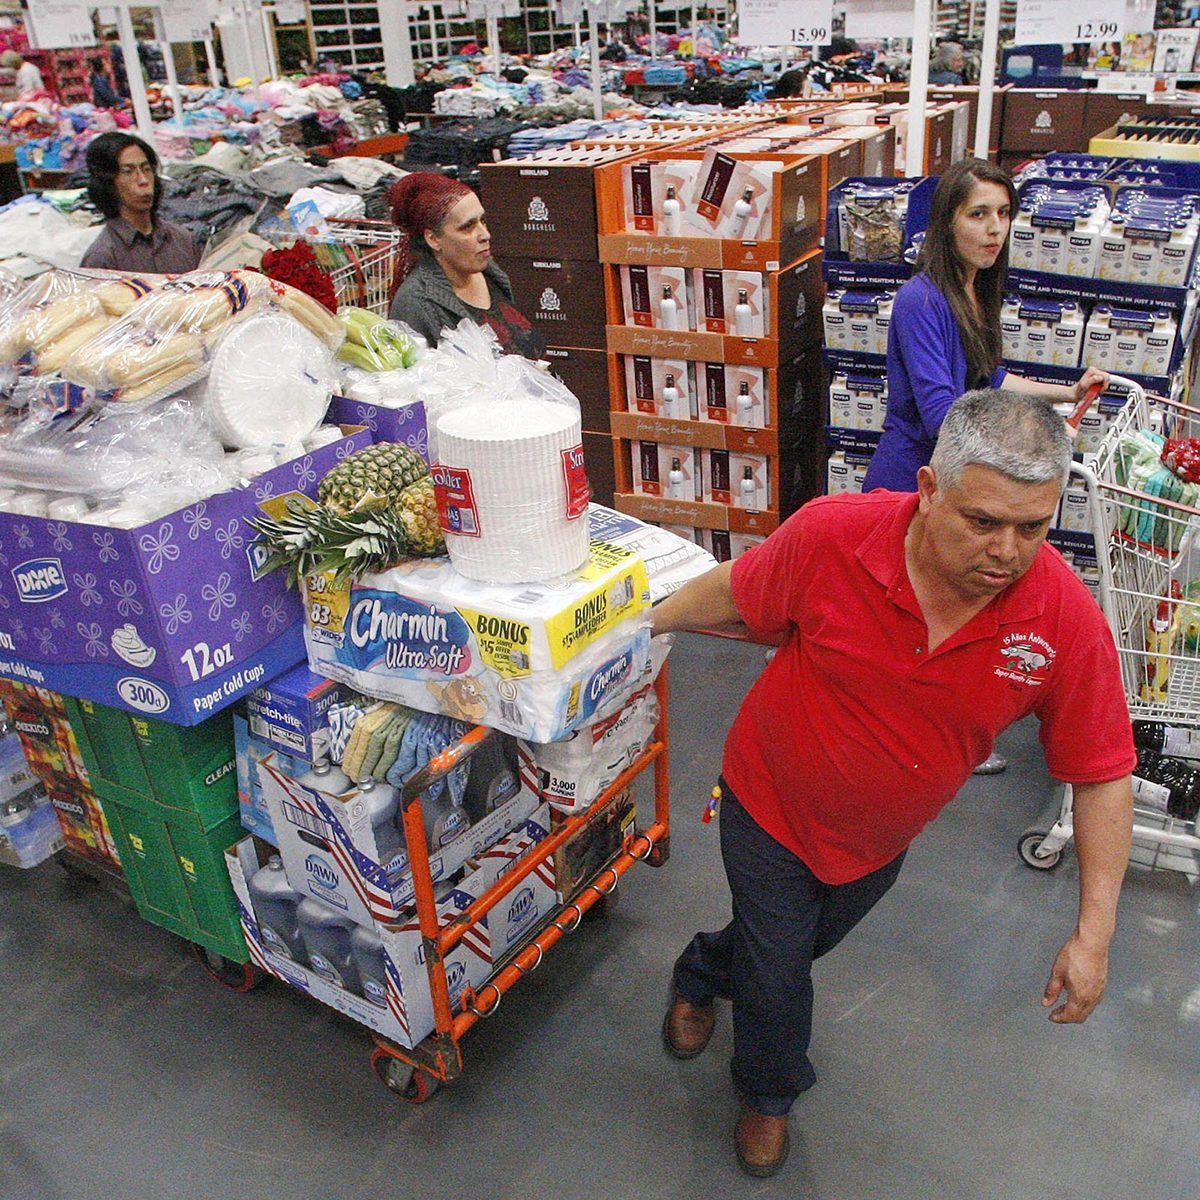 Overloaded cart at Costco